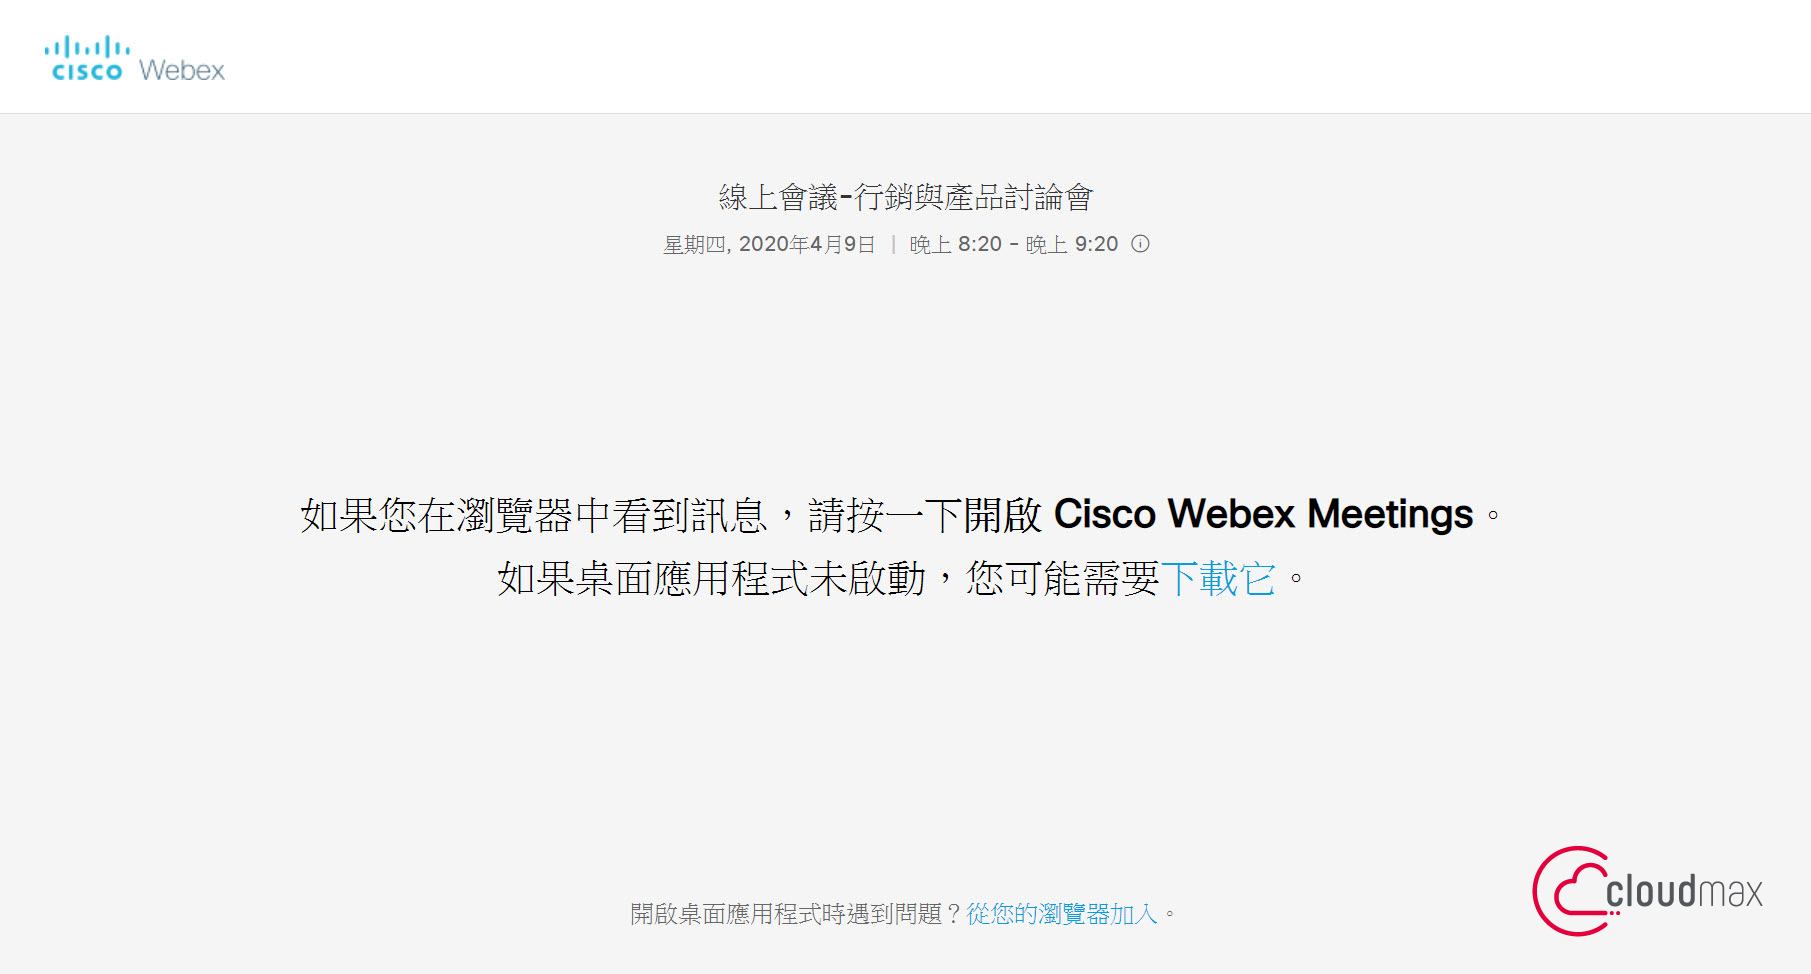 Cisco-Webex-meeting-application